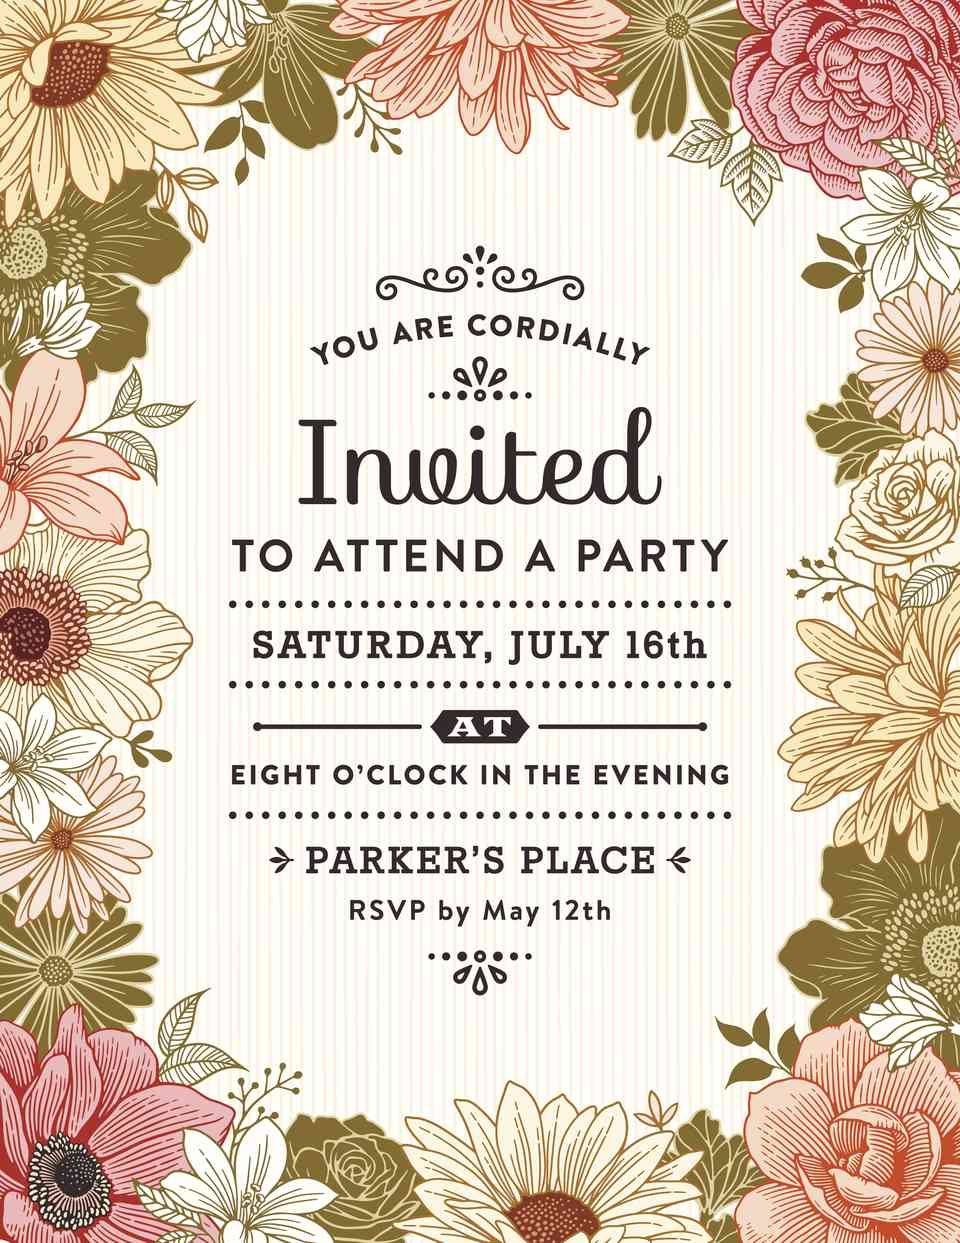 A sample party invitation